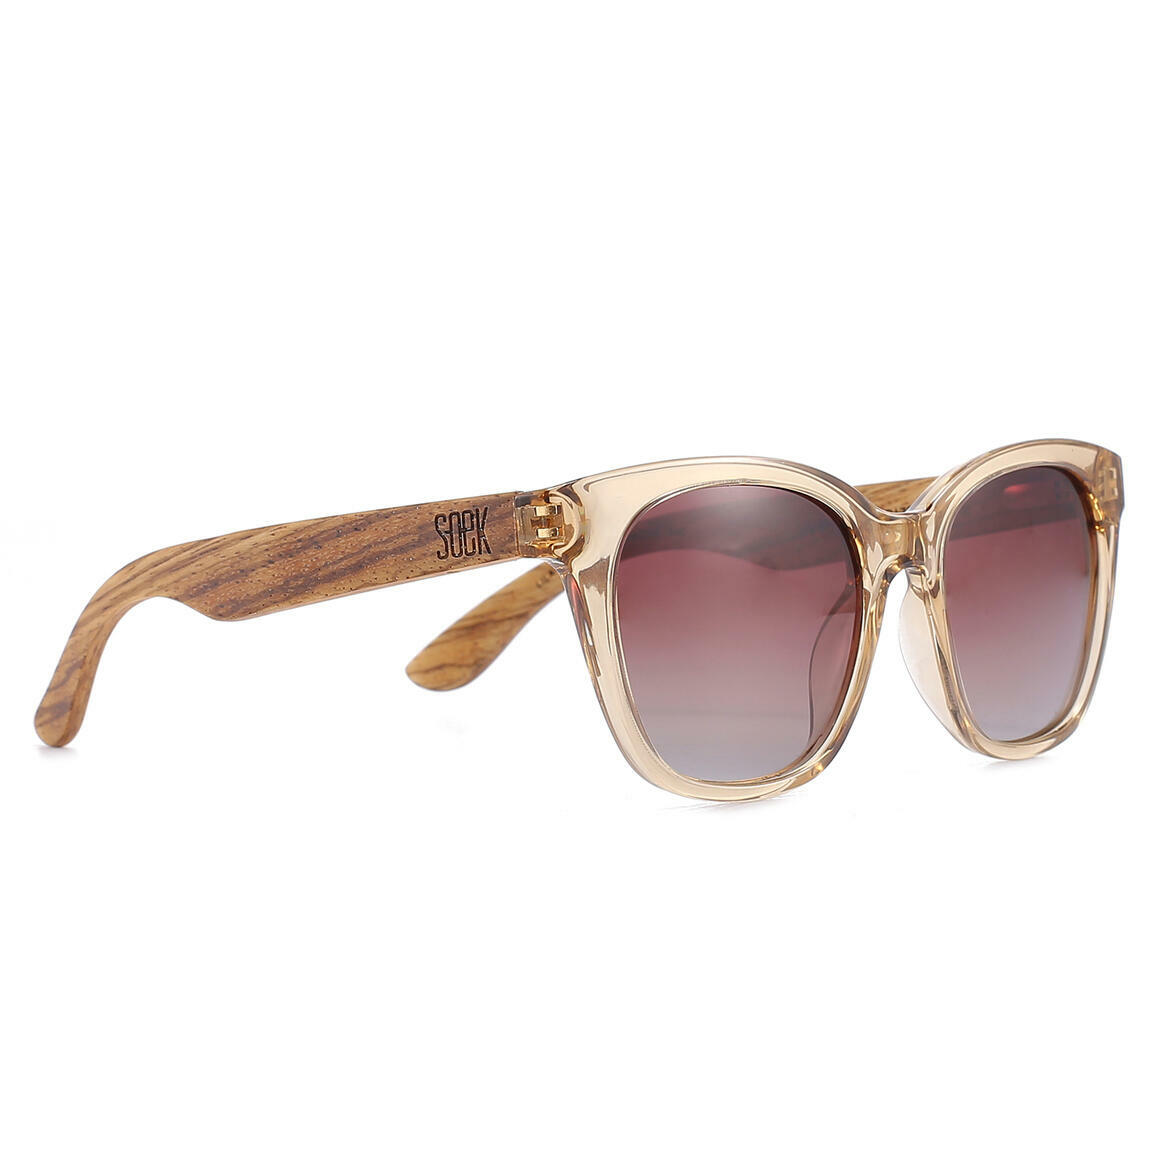 LILA GRACE CHAMPAGNE - With Brown Graduated Tinted Polarized Lens and Walnut Arms - Adult | Trada Marketplace